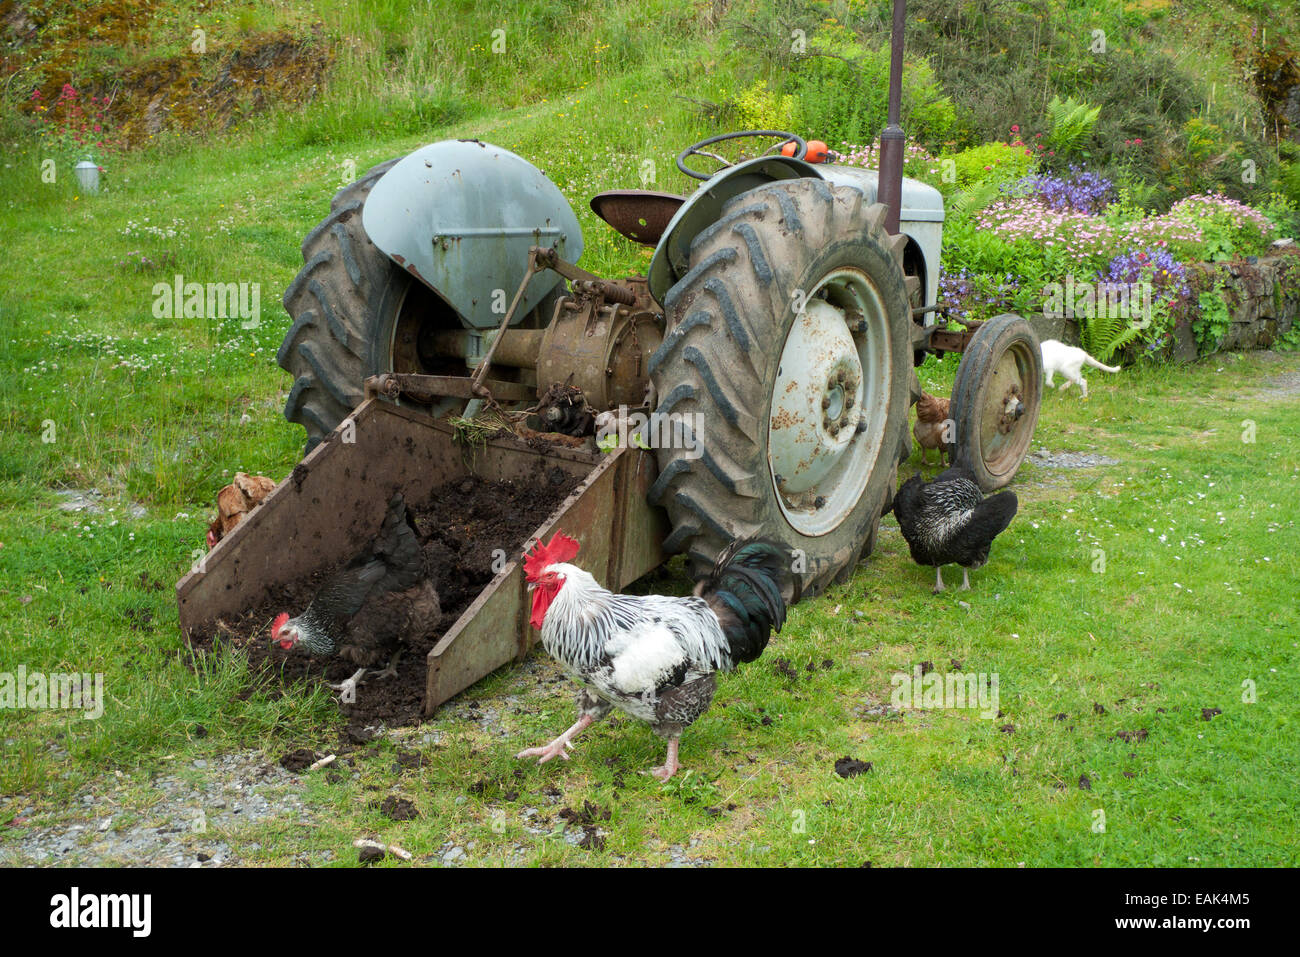 Free range chickens & cockerel pecking at manure in bucket of a tractor on smallholding in Carmarthenshire Wales - Stock Image